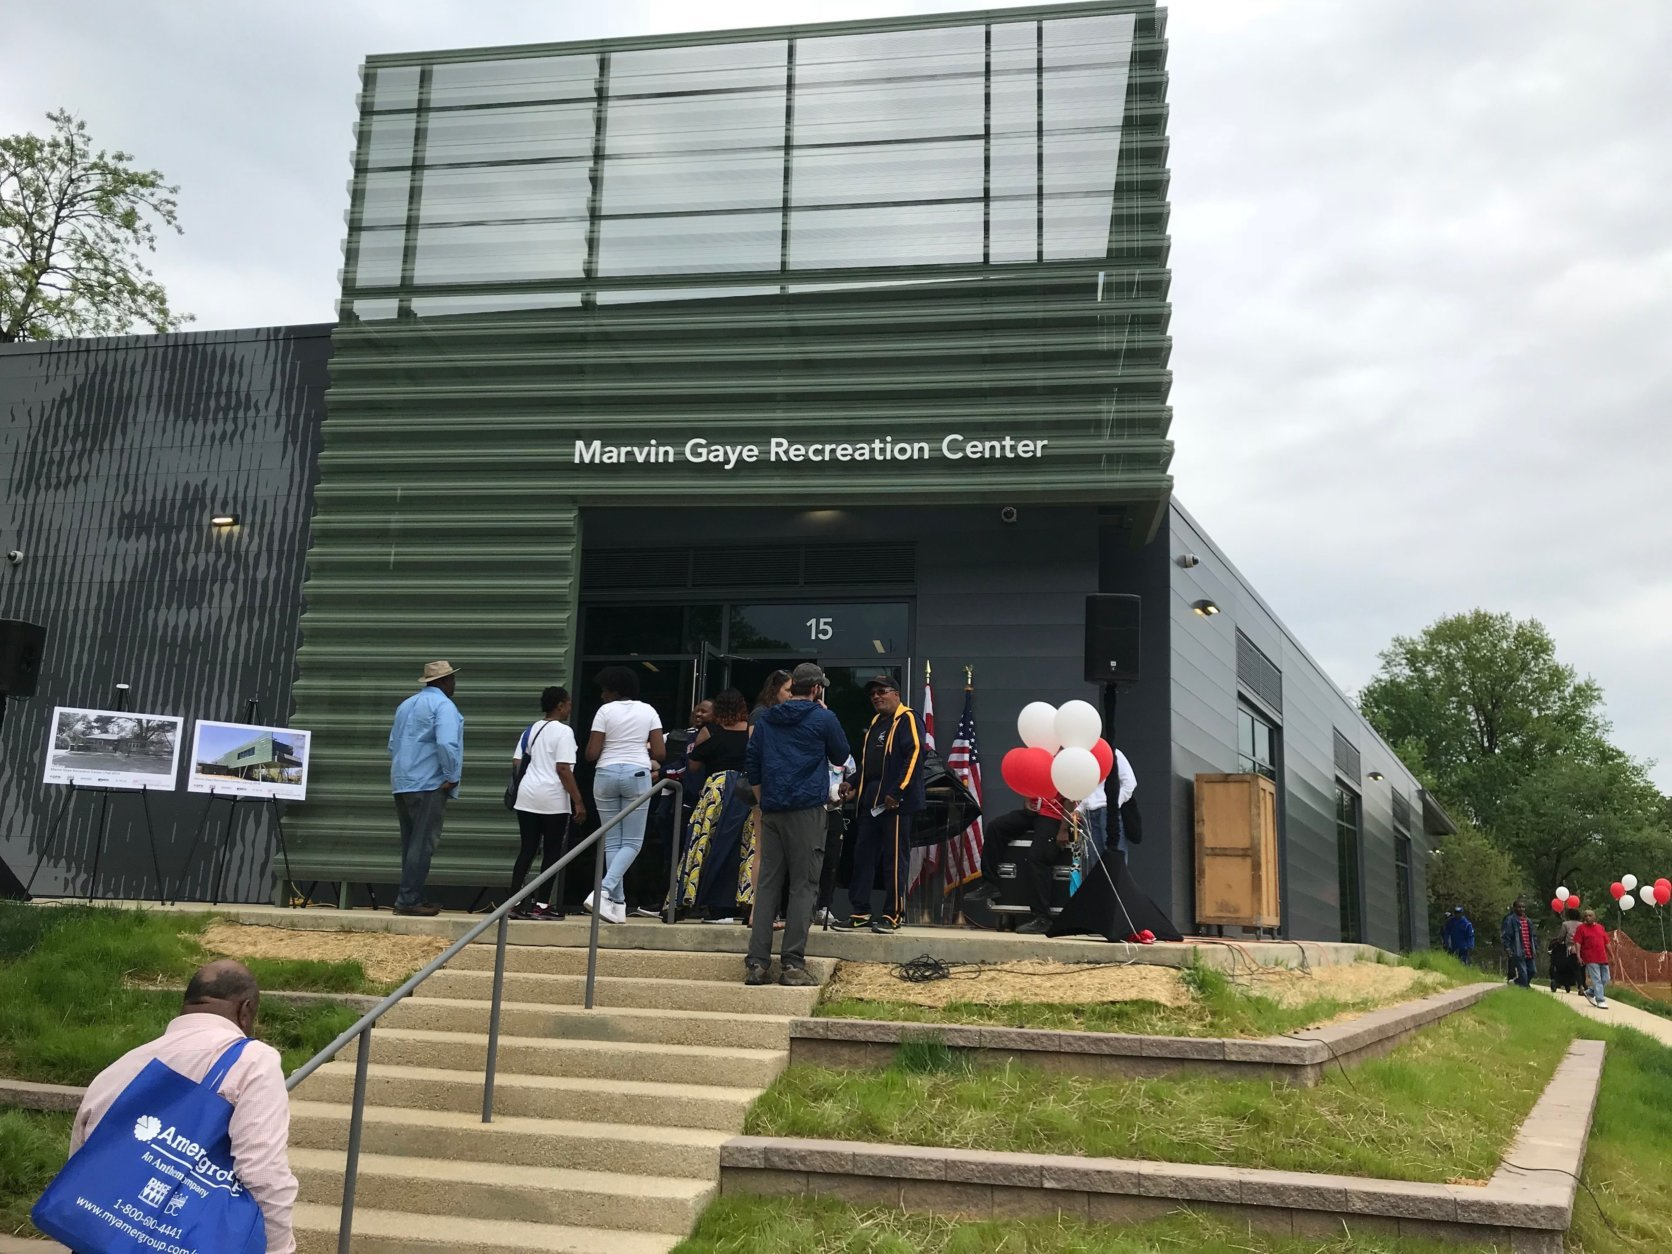 The new Marvin Gaye Recreation center opens Saturday, May 5, 2018. (WTOP/Dick Uliano)